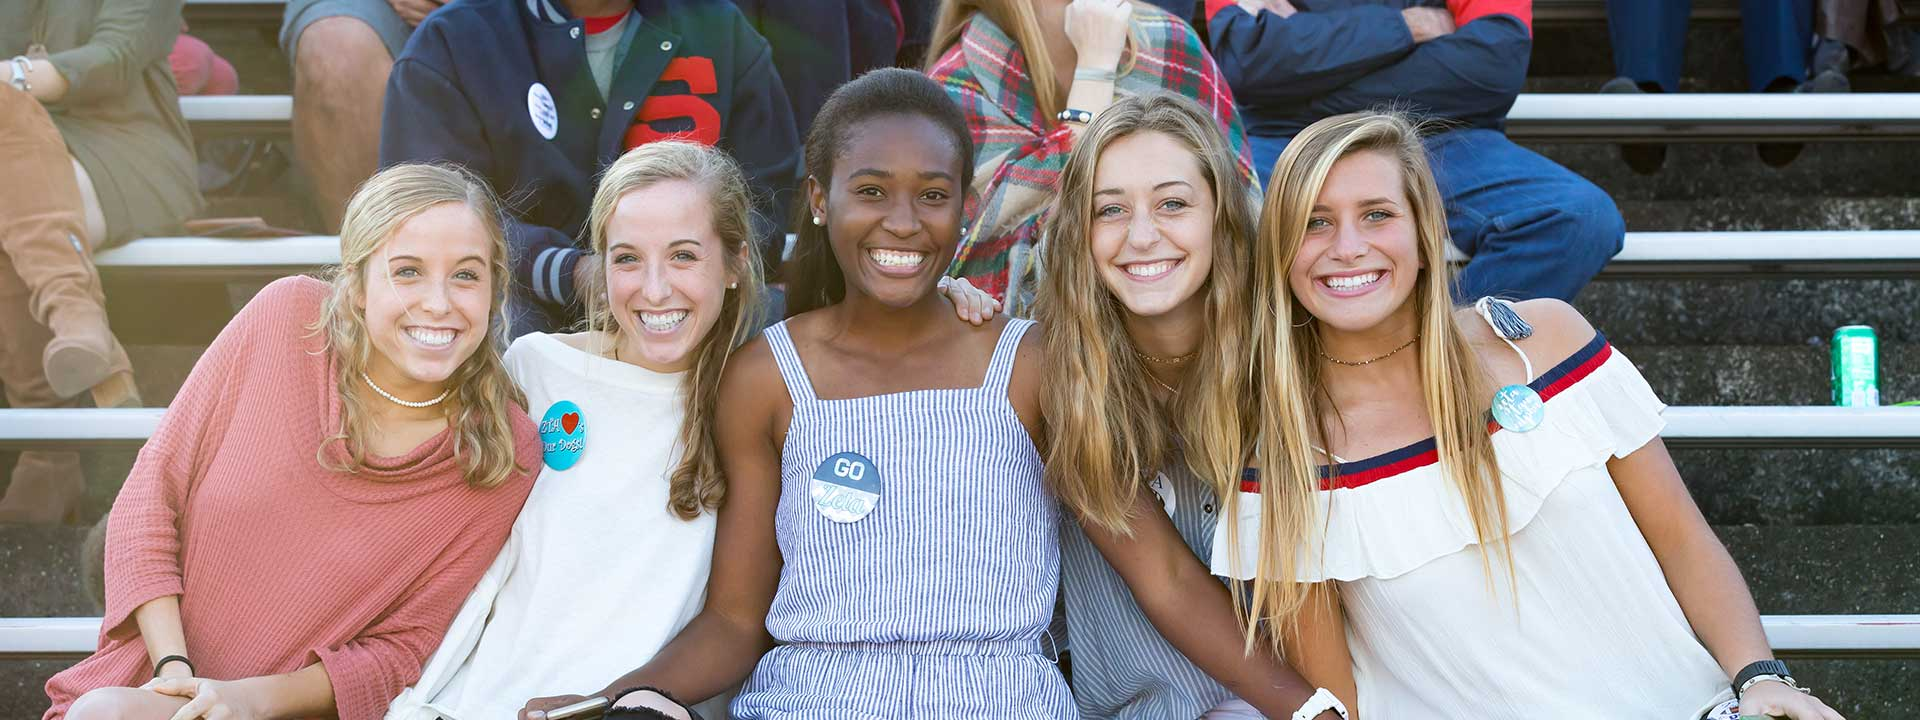 five smiling female students at football game